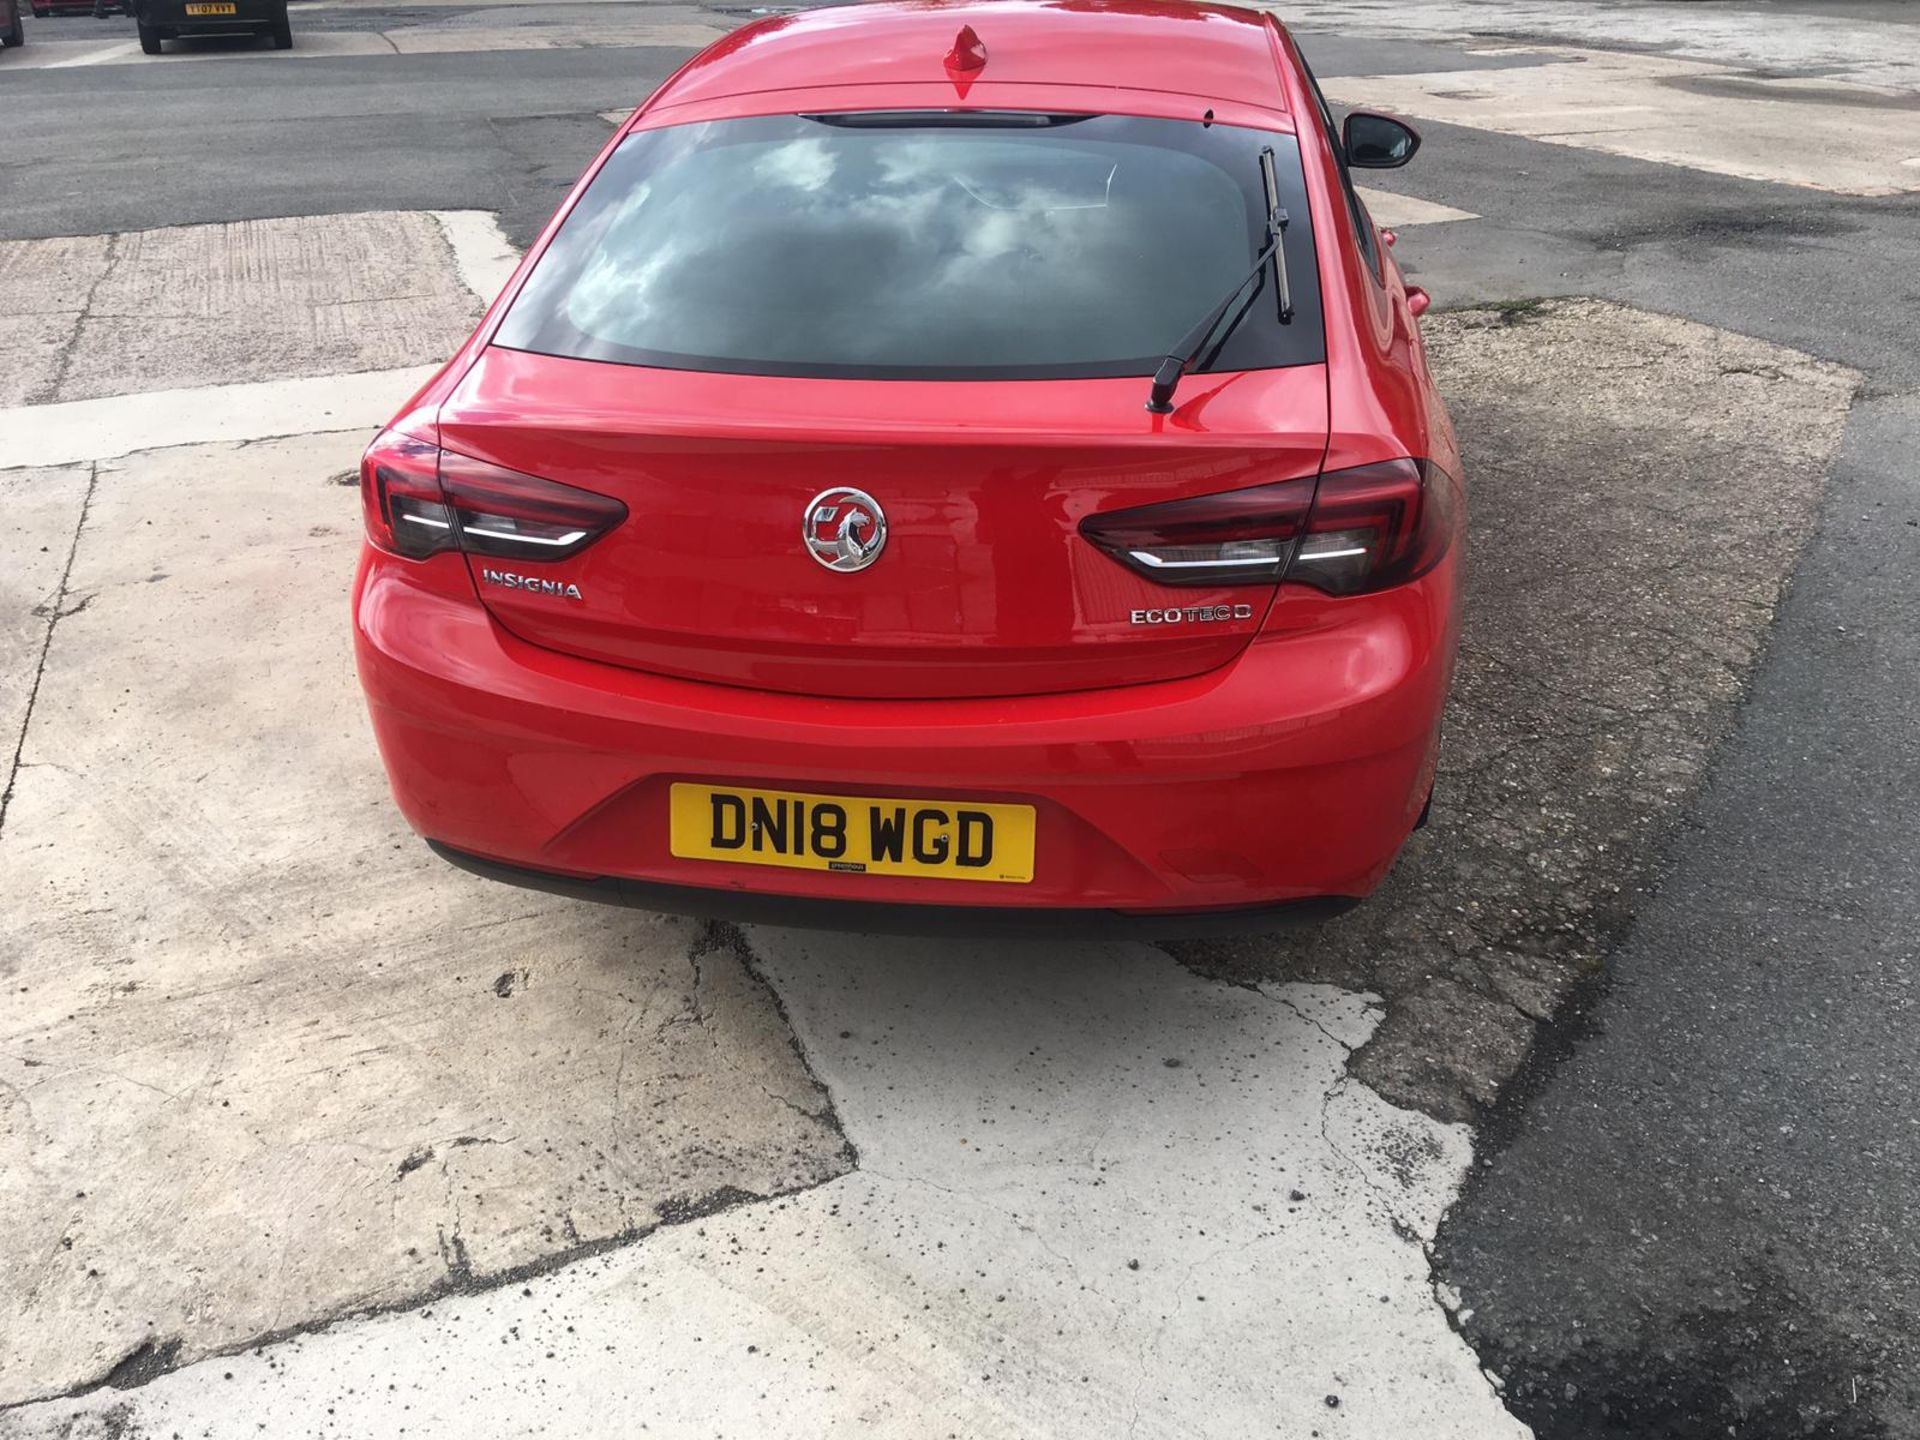 2018/18 REG VAUXHALL INSIGNIA DESIGN ECOTEC TURBO 1.6 DIESEL RED, SHOWING 0 FORMER KEEPERS *NO VAT* - Image 7 of 34